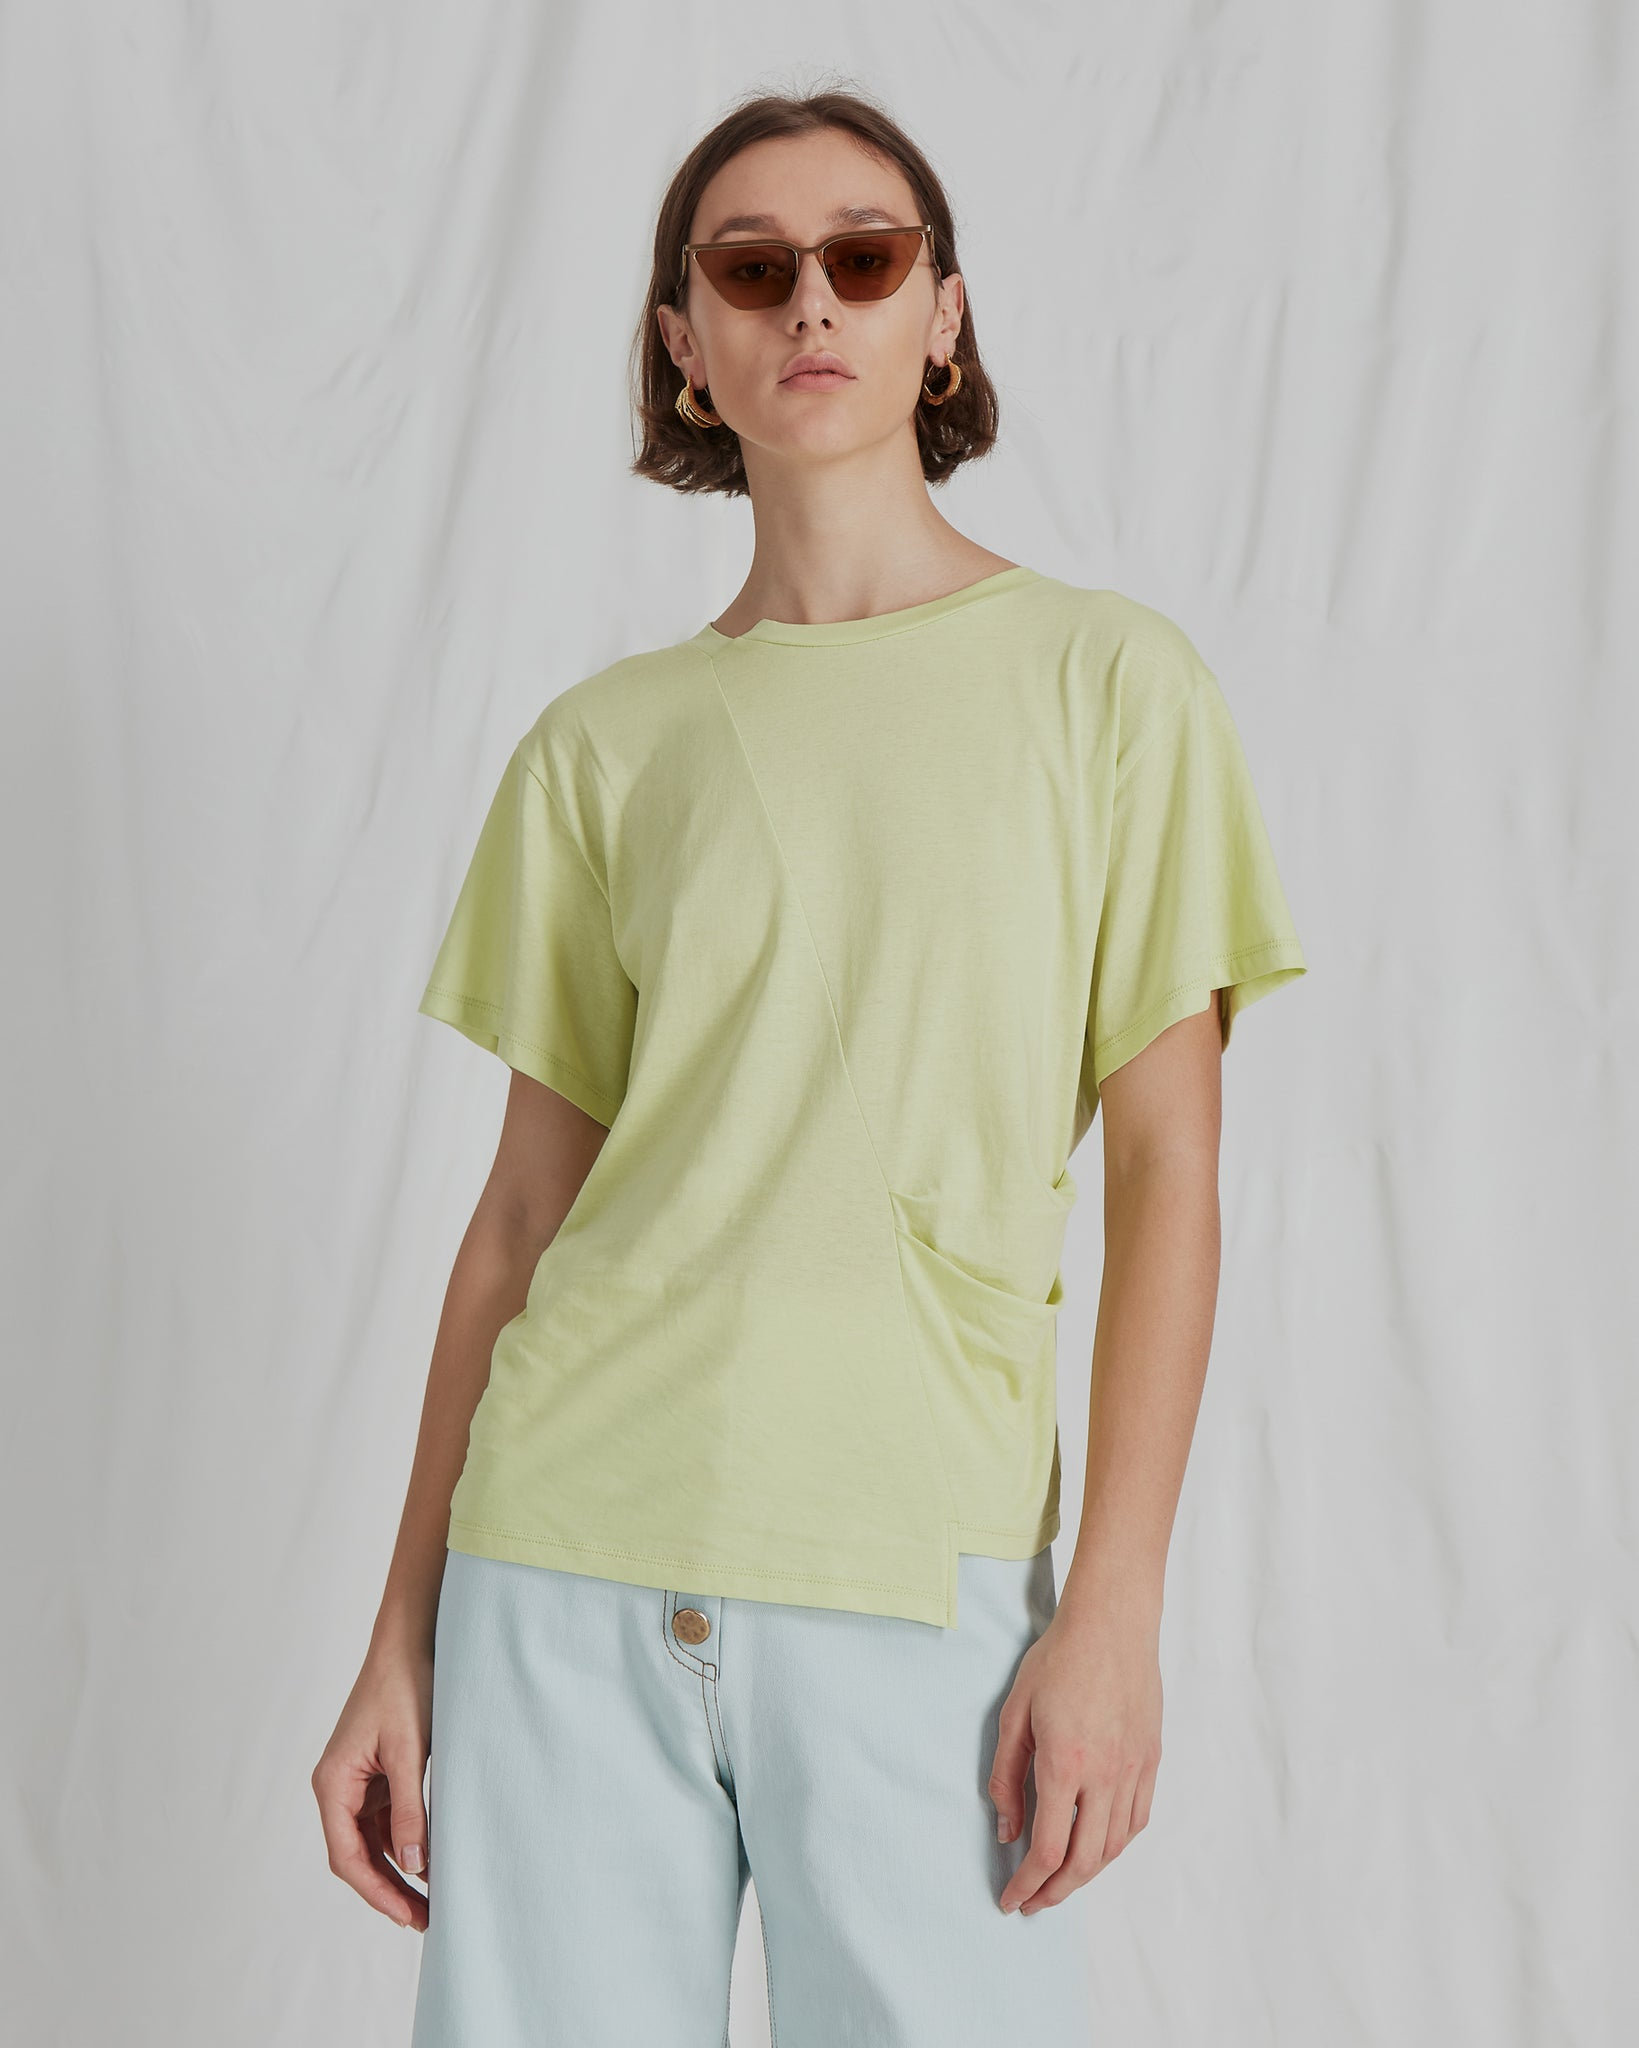 Sabrina T-Shirt Cotton Jersey Green